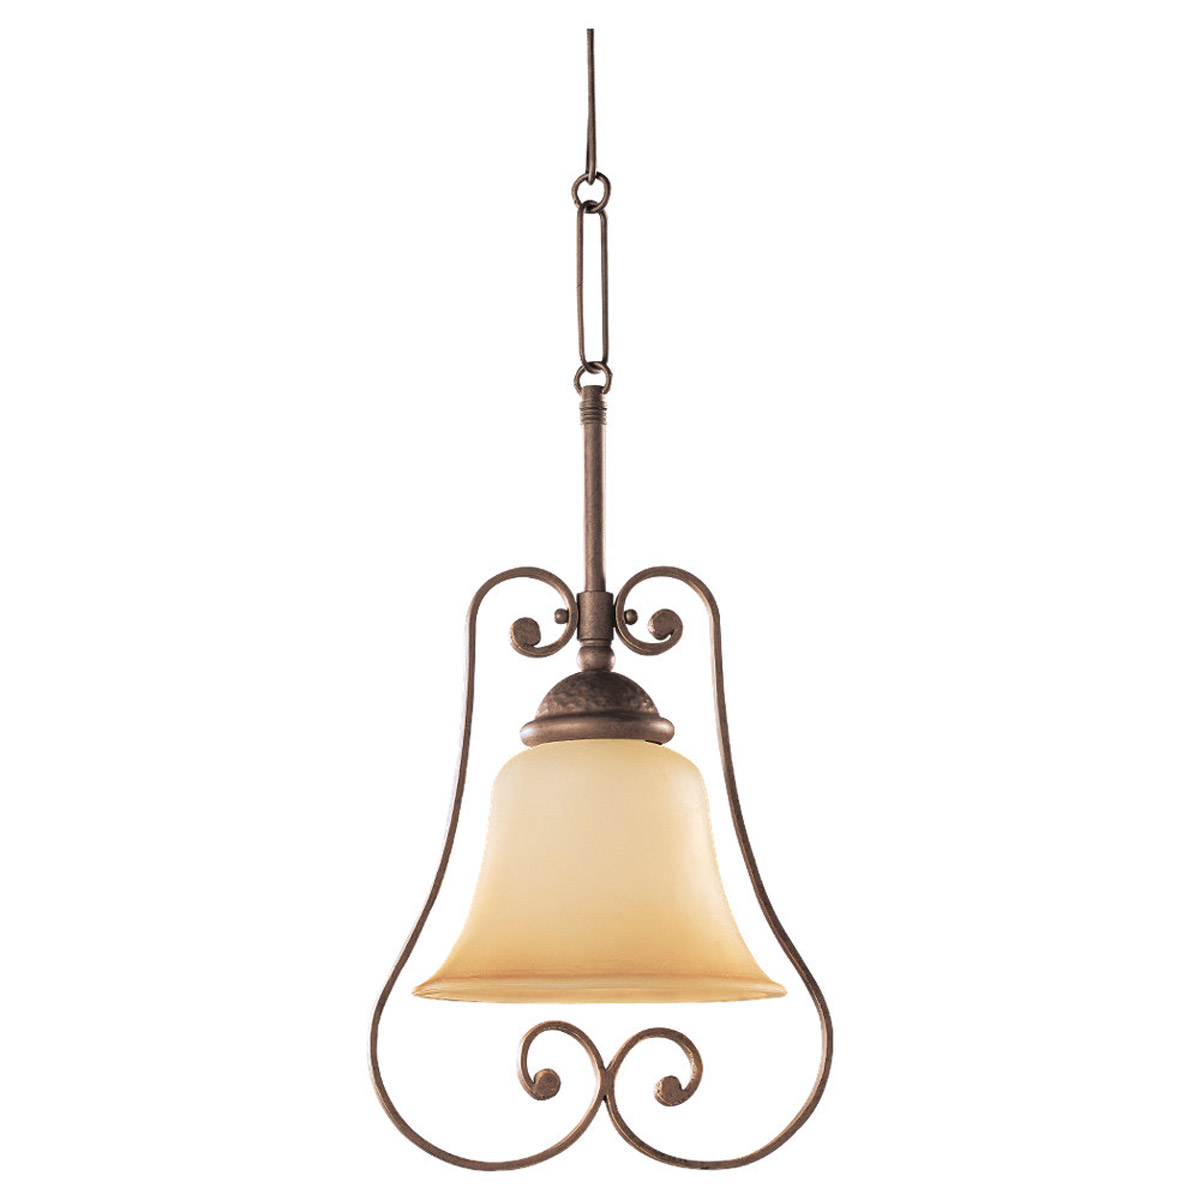 Sea Gull Lighting Brandywine 1 Light Mini Pendant in Antique Bronze 61430-71